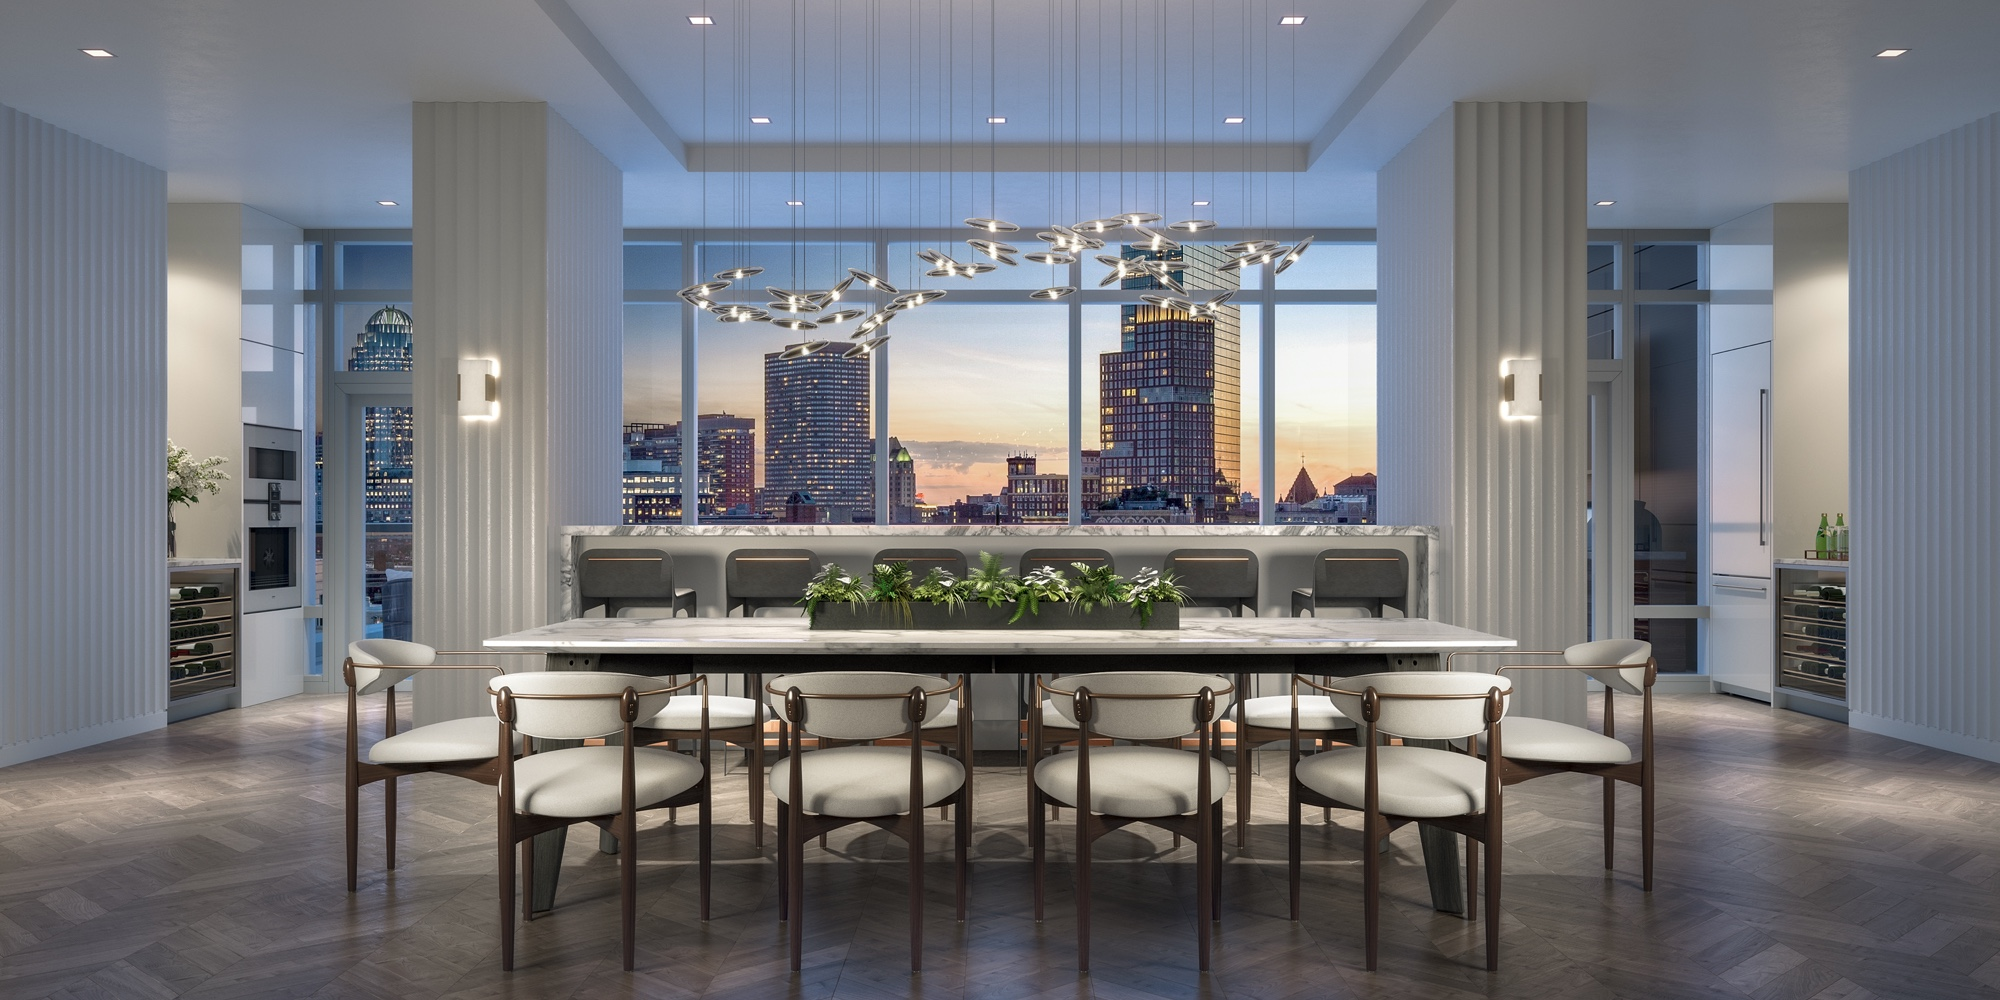 Interior view of dining room with view of Boston skyline